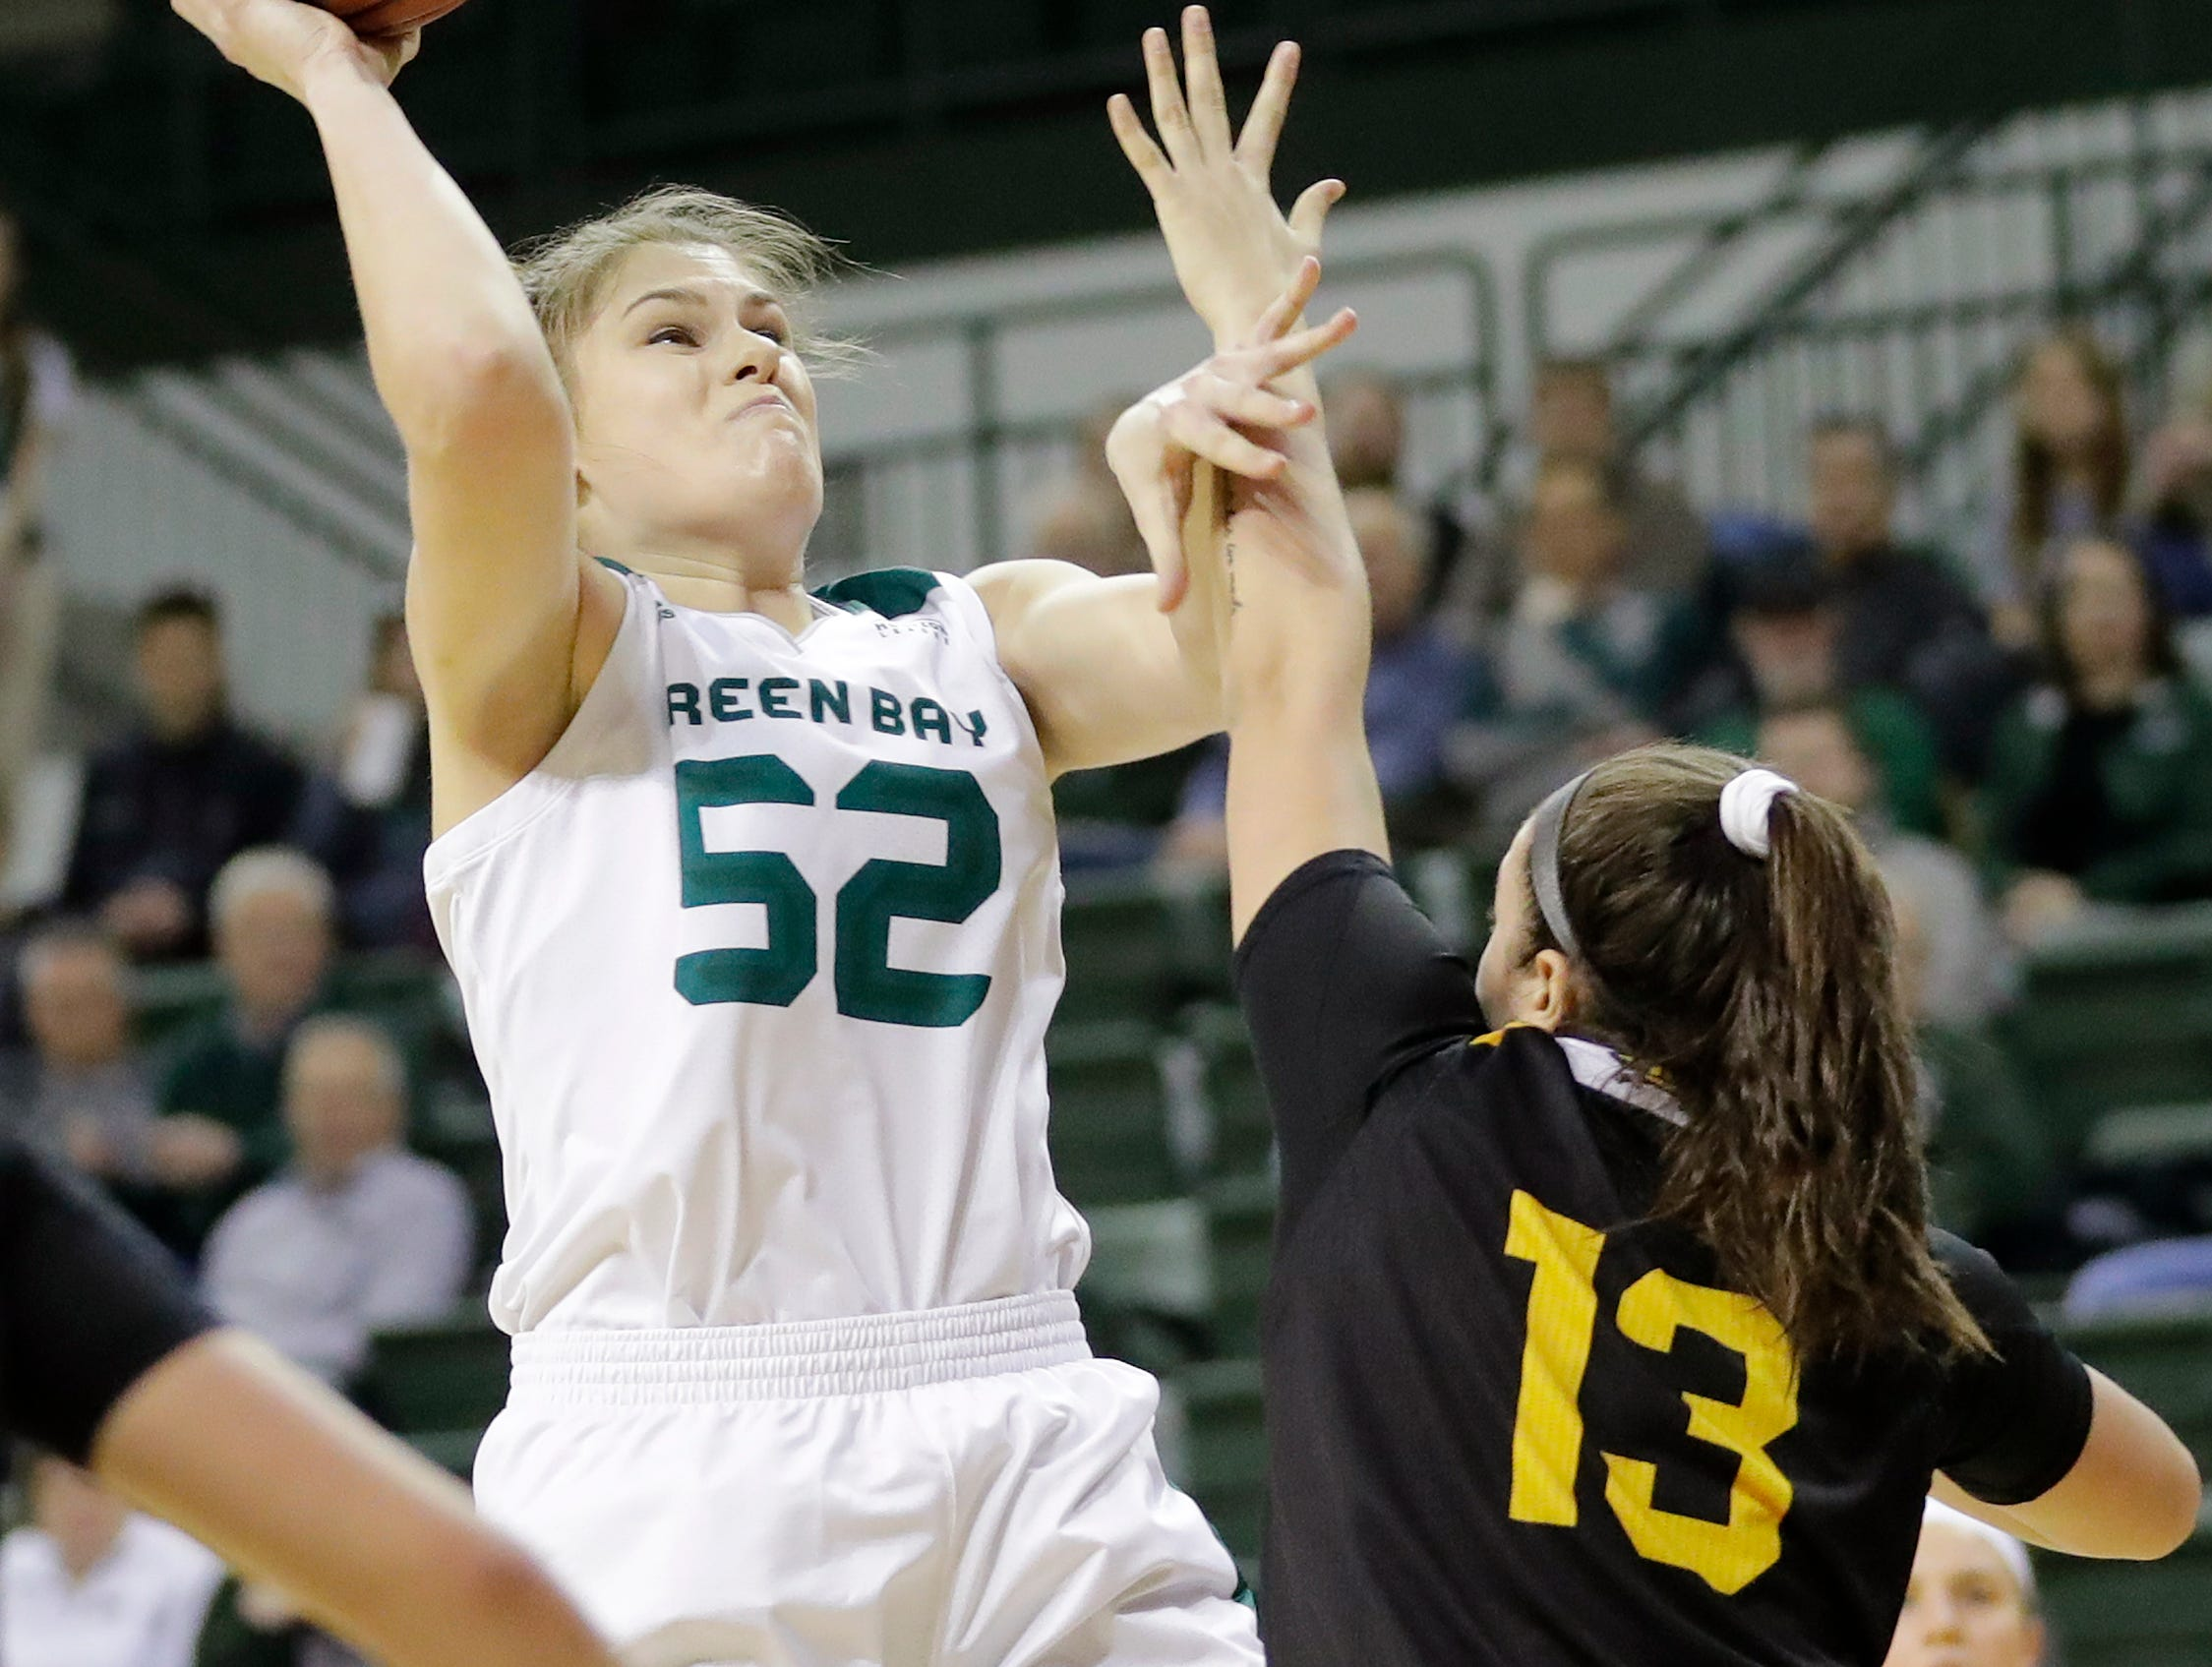 Green Bay Phoenix forward/center Madison Wolf (52) shoots over Northern Kentucky Norse forward Jazmyne Geist (13) in a Horizon League women's basketball game at the Kress Center on Thursday, February 7, 2019 in Green Bay, Wis.